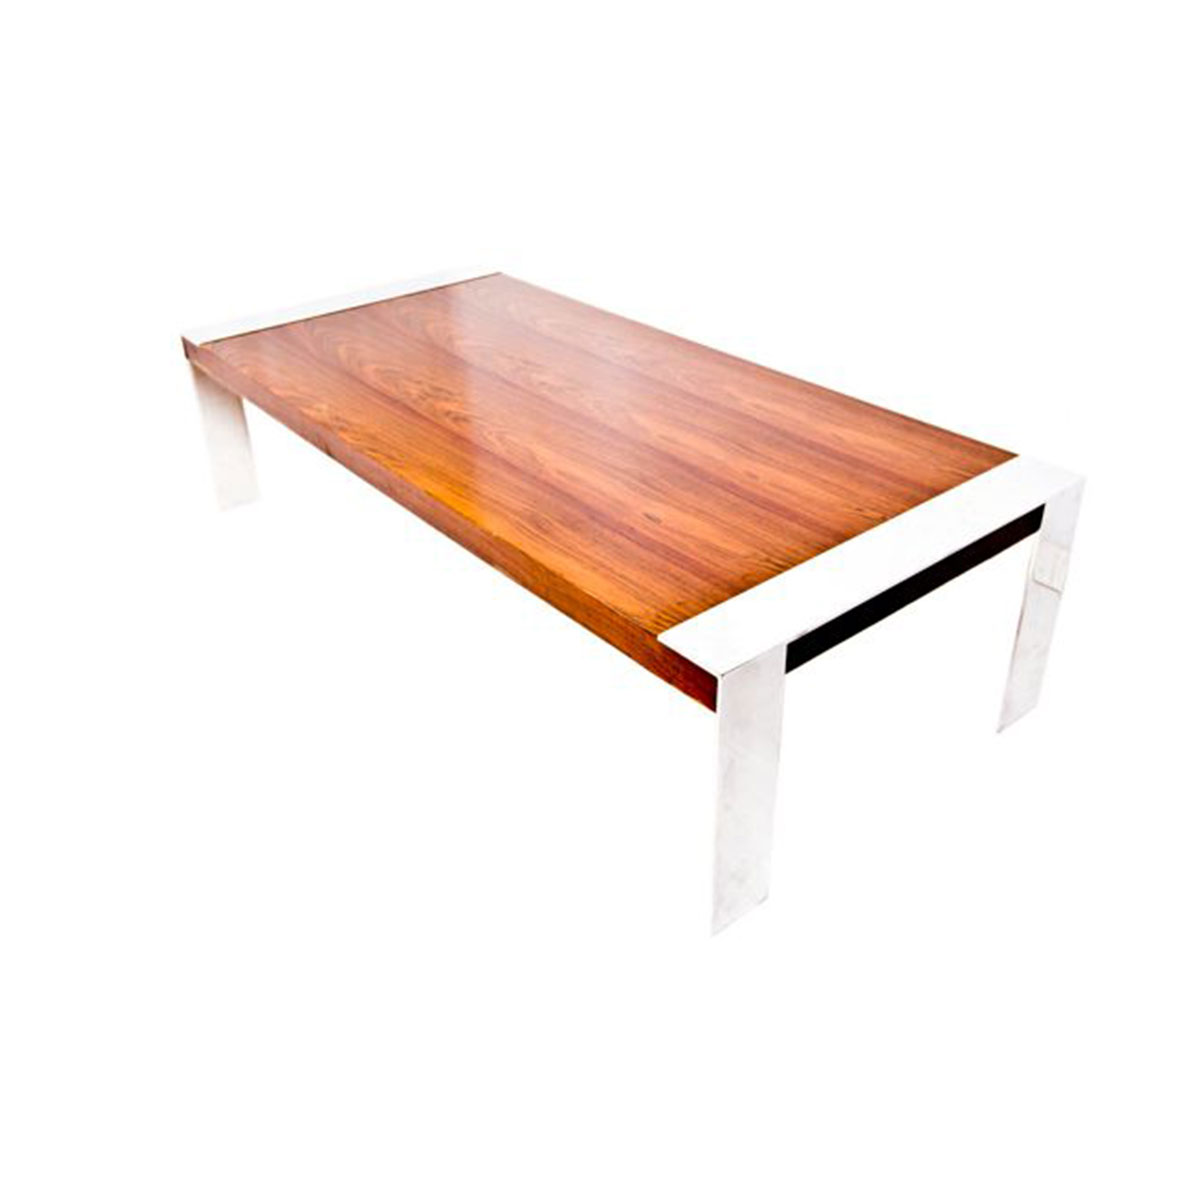 Milo Baughman Large Rio Rosewood and Chrome Coffee Table